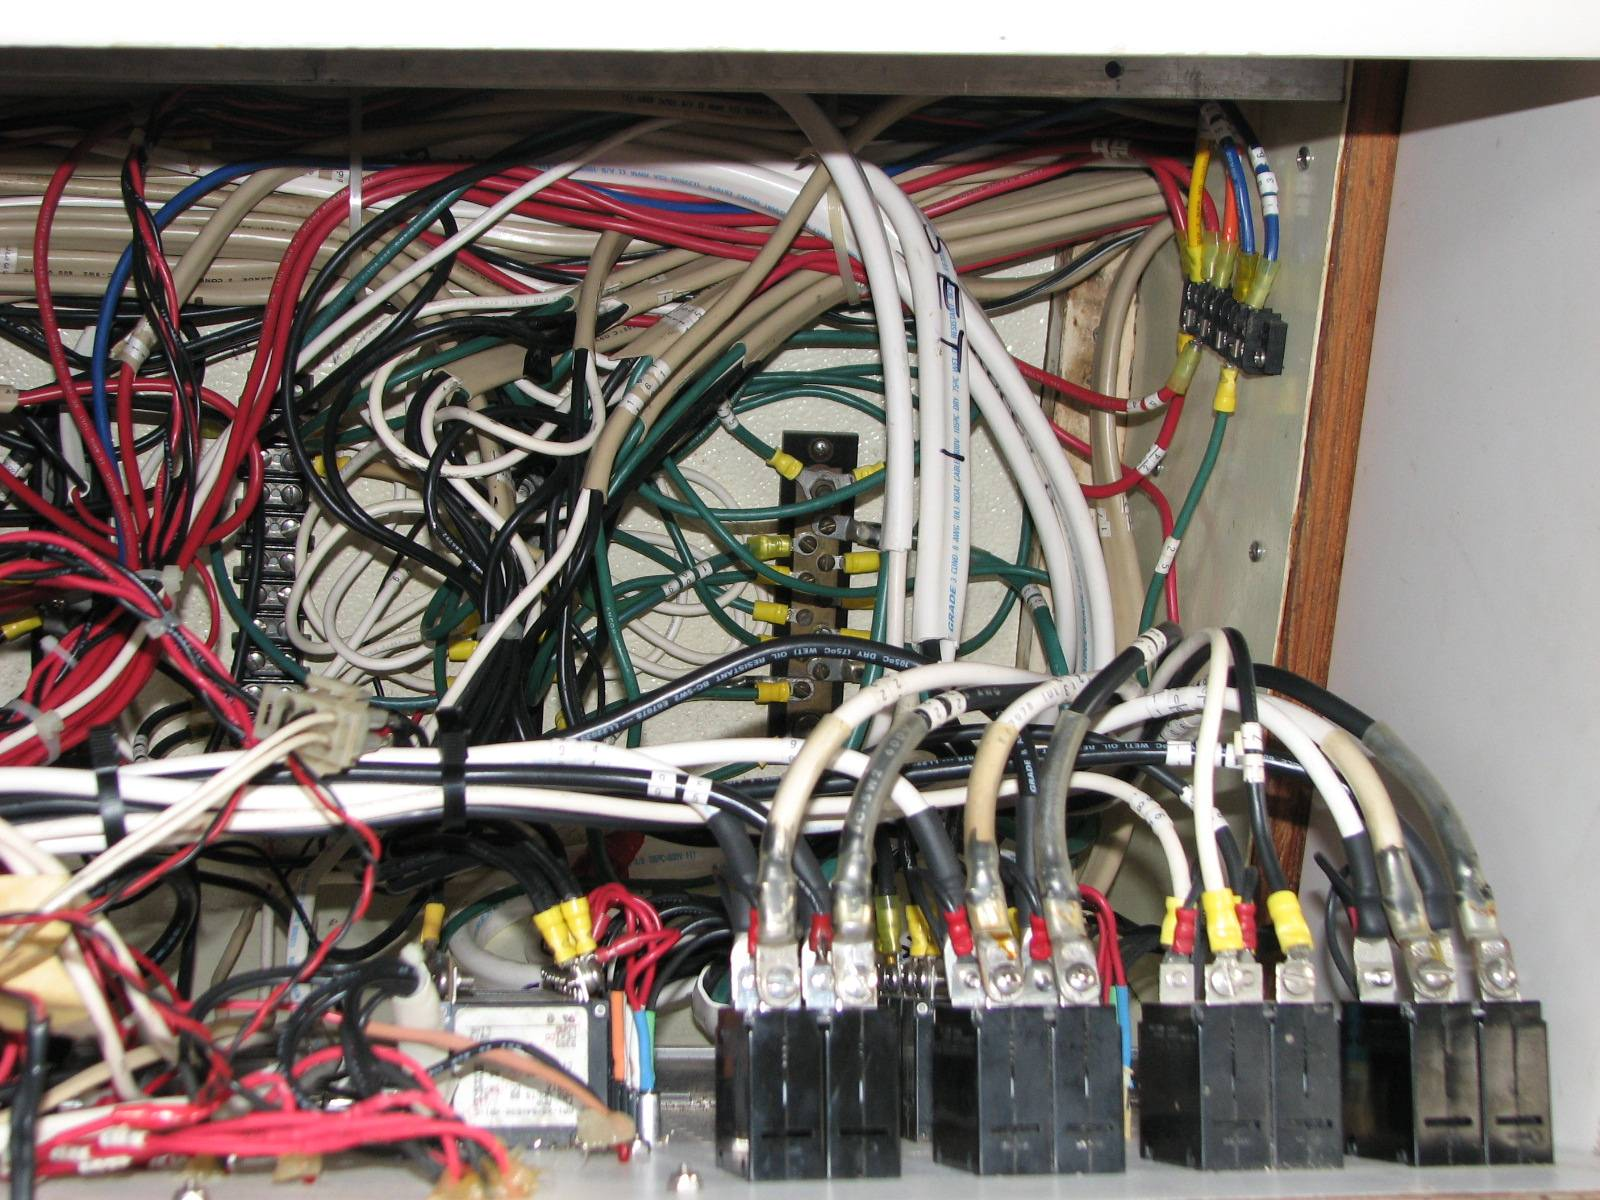 Ac Breaker Panel Wiring Electrical Diagrams A Box For 110 Systems To